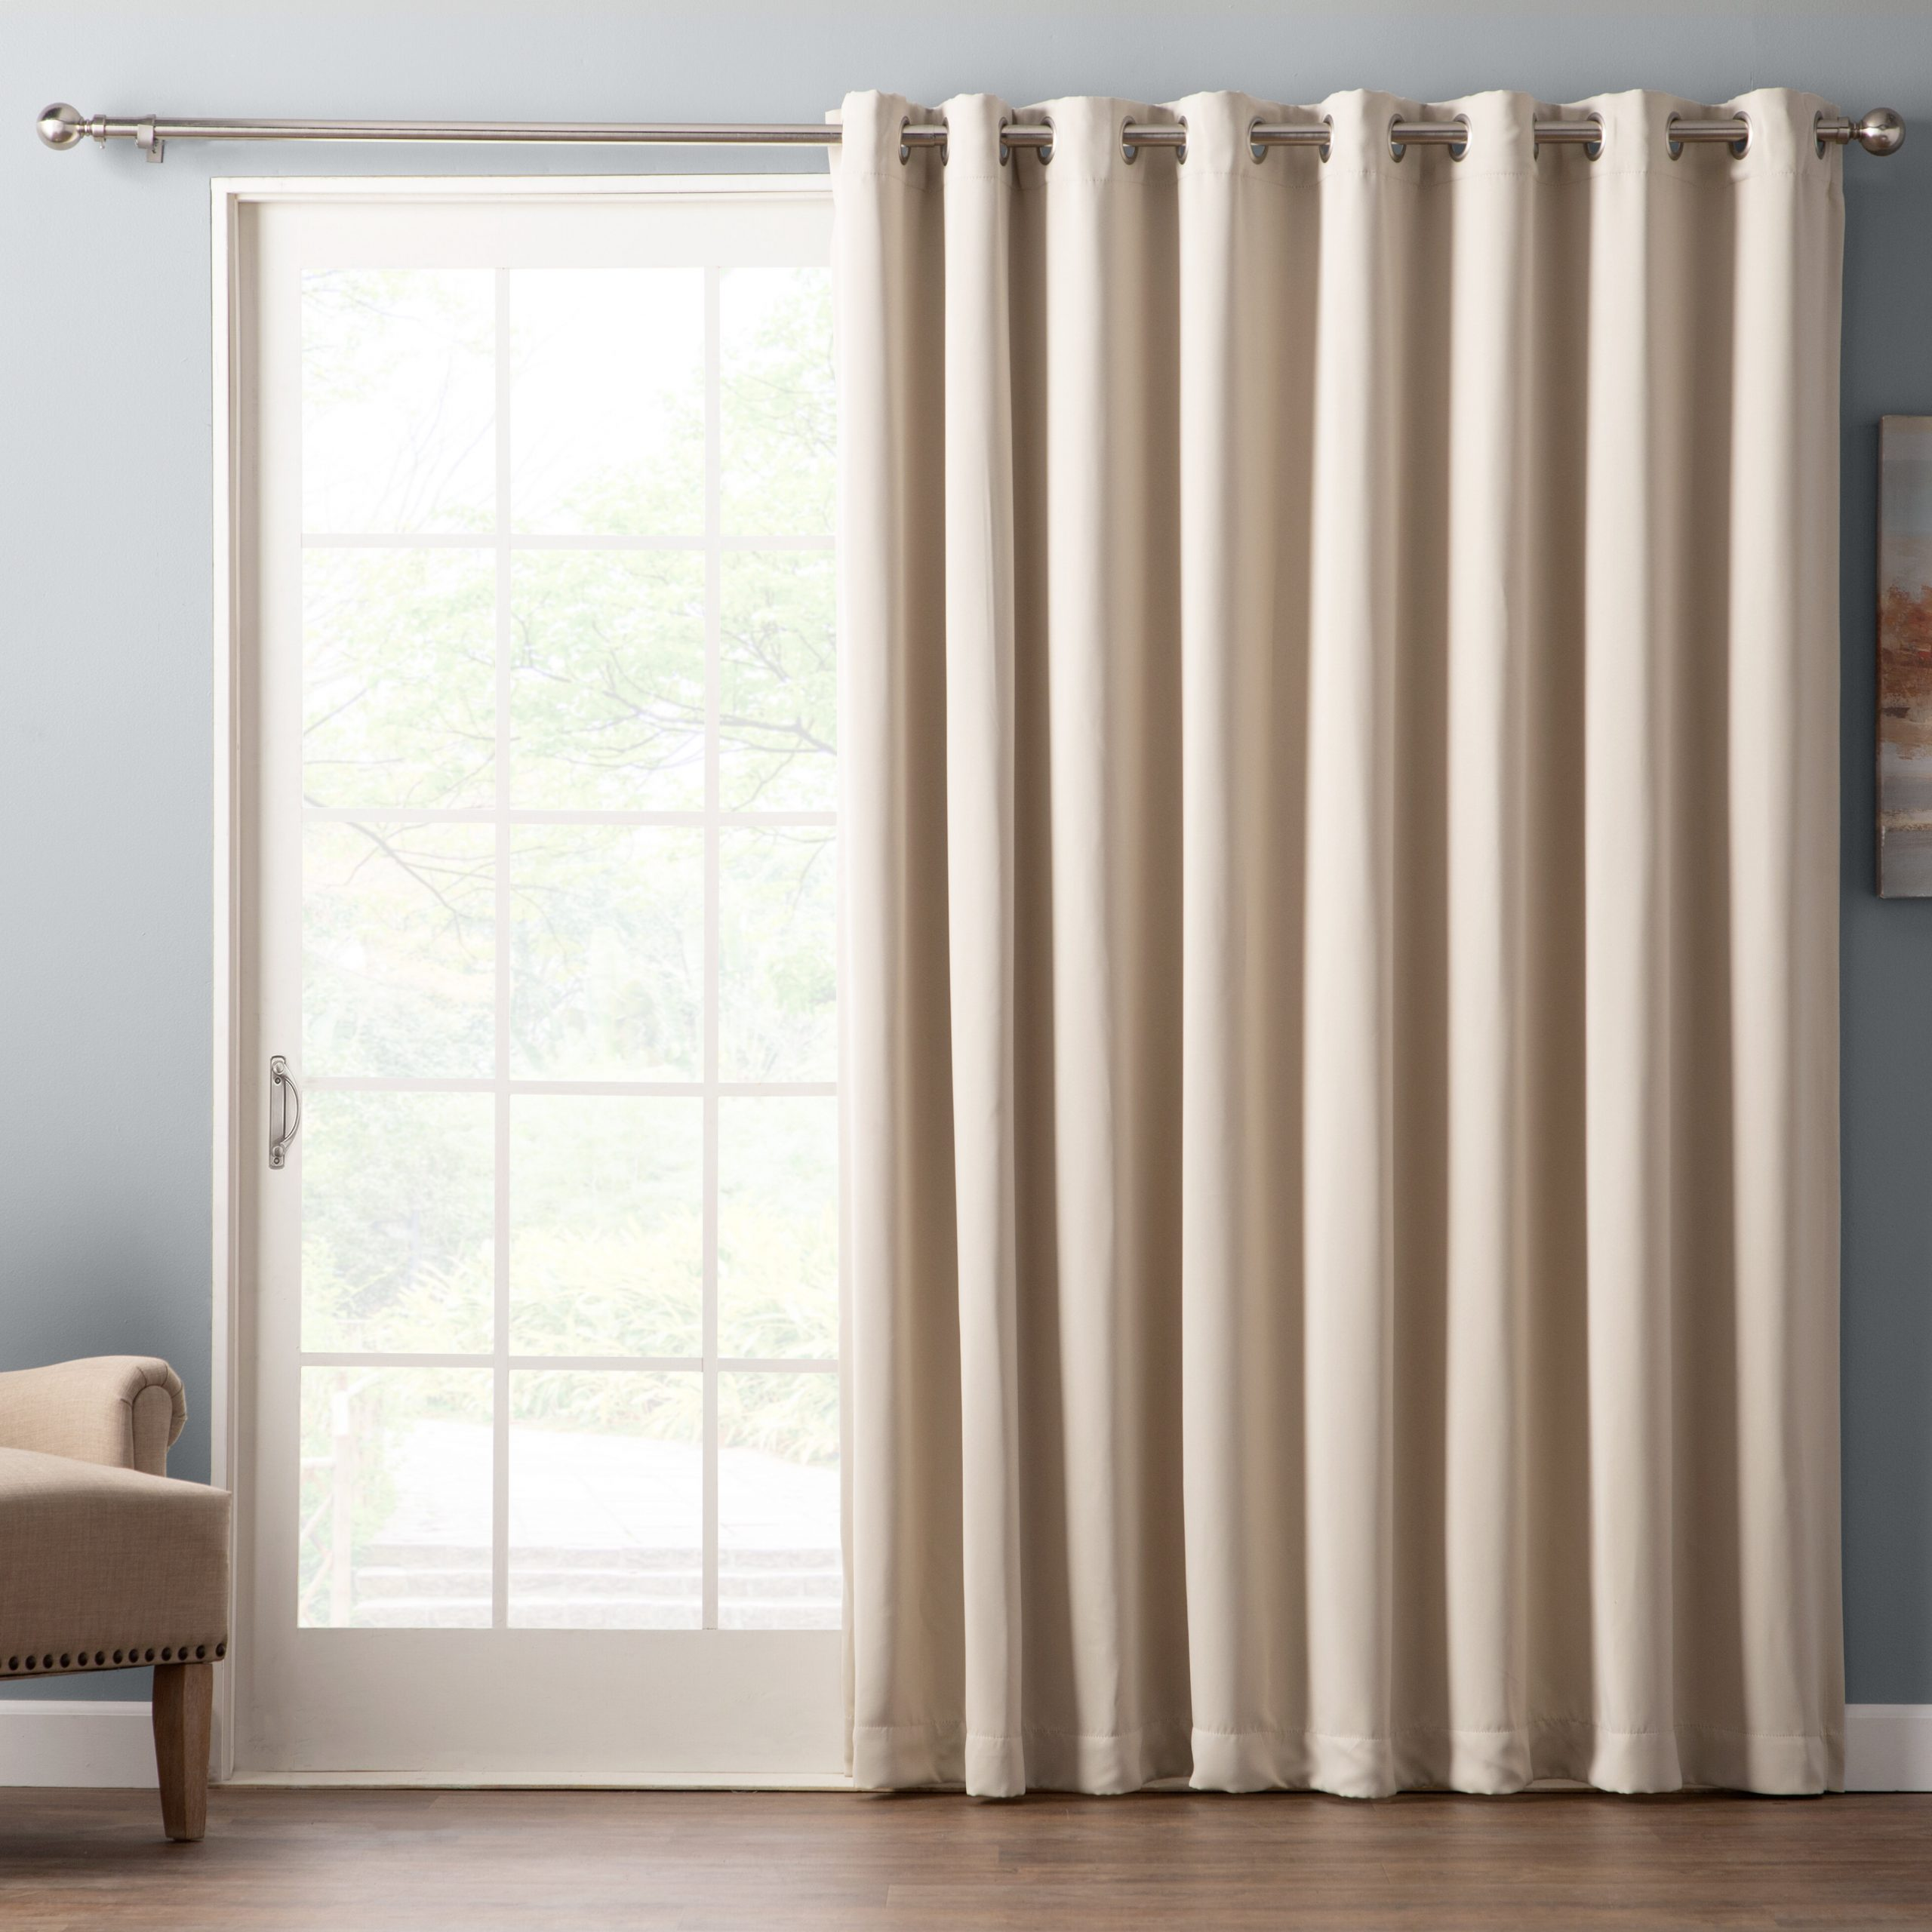 Wayfair Basics Solid Blackout Grommet Single Patio Curtain Panel Within Widely Used Patio Grommet Top Single Curtain Panels (View 18 of 20)